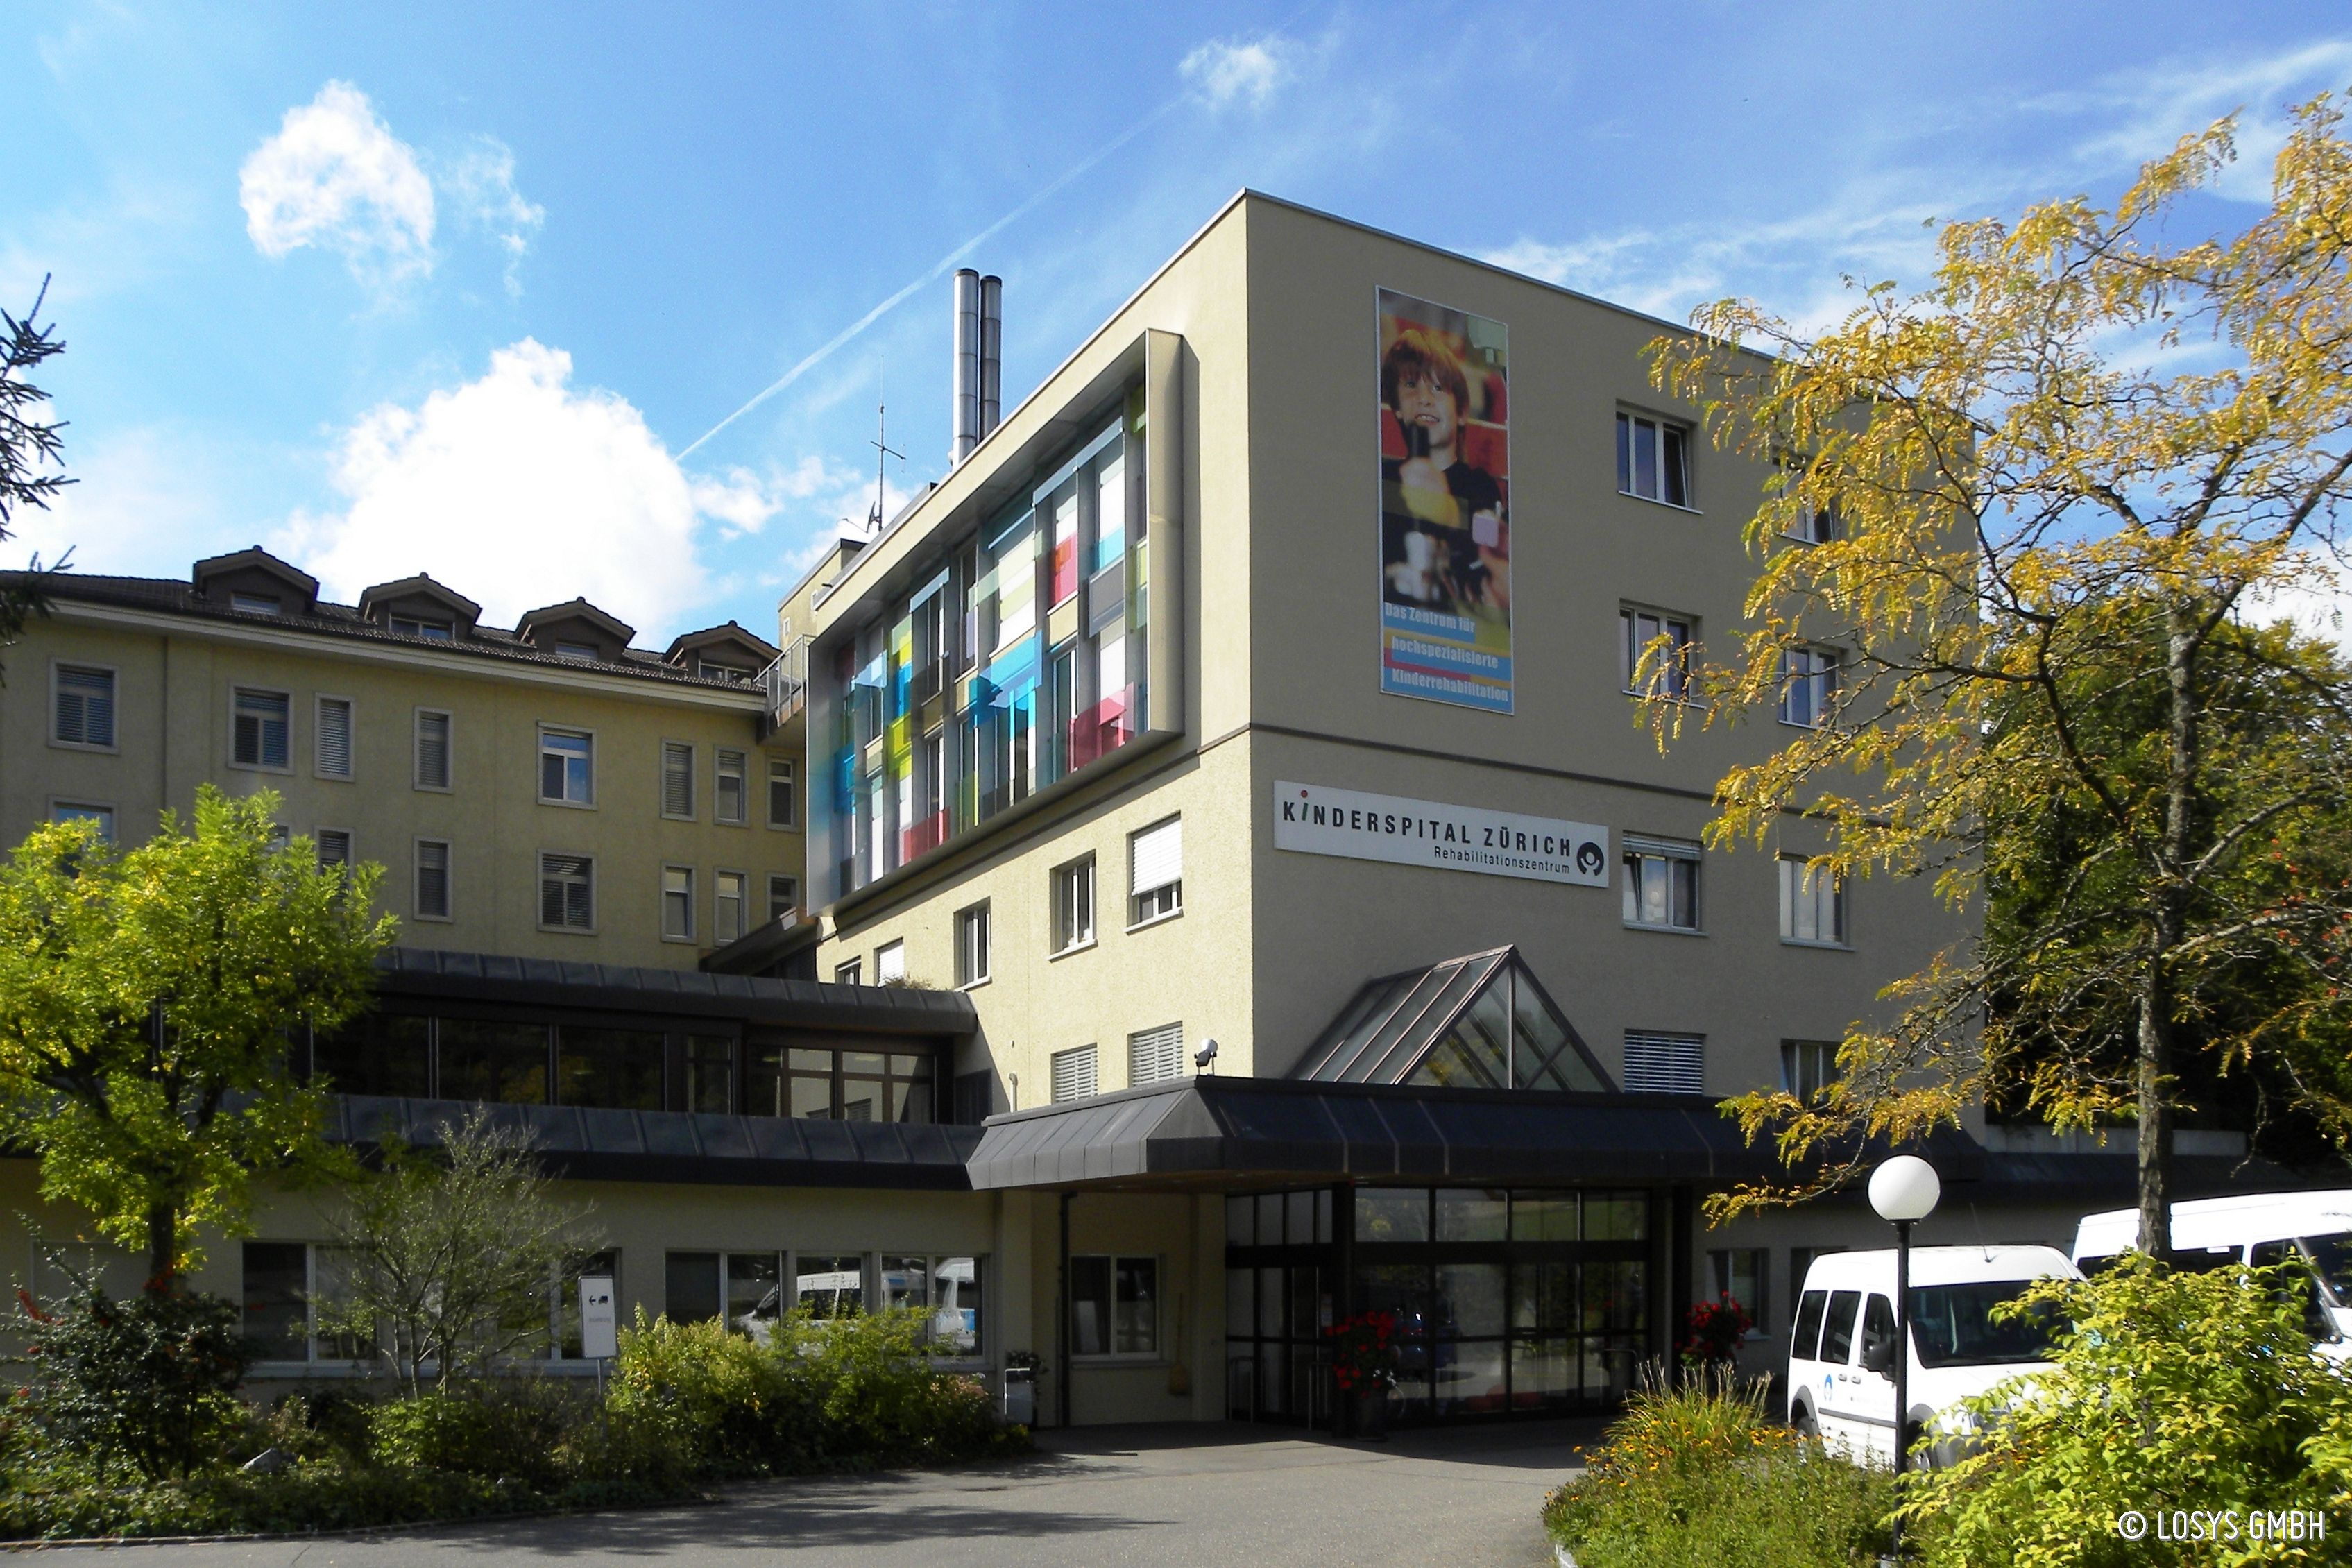 Kinderspital Zürich Rehabilitationszentrum